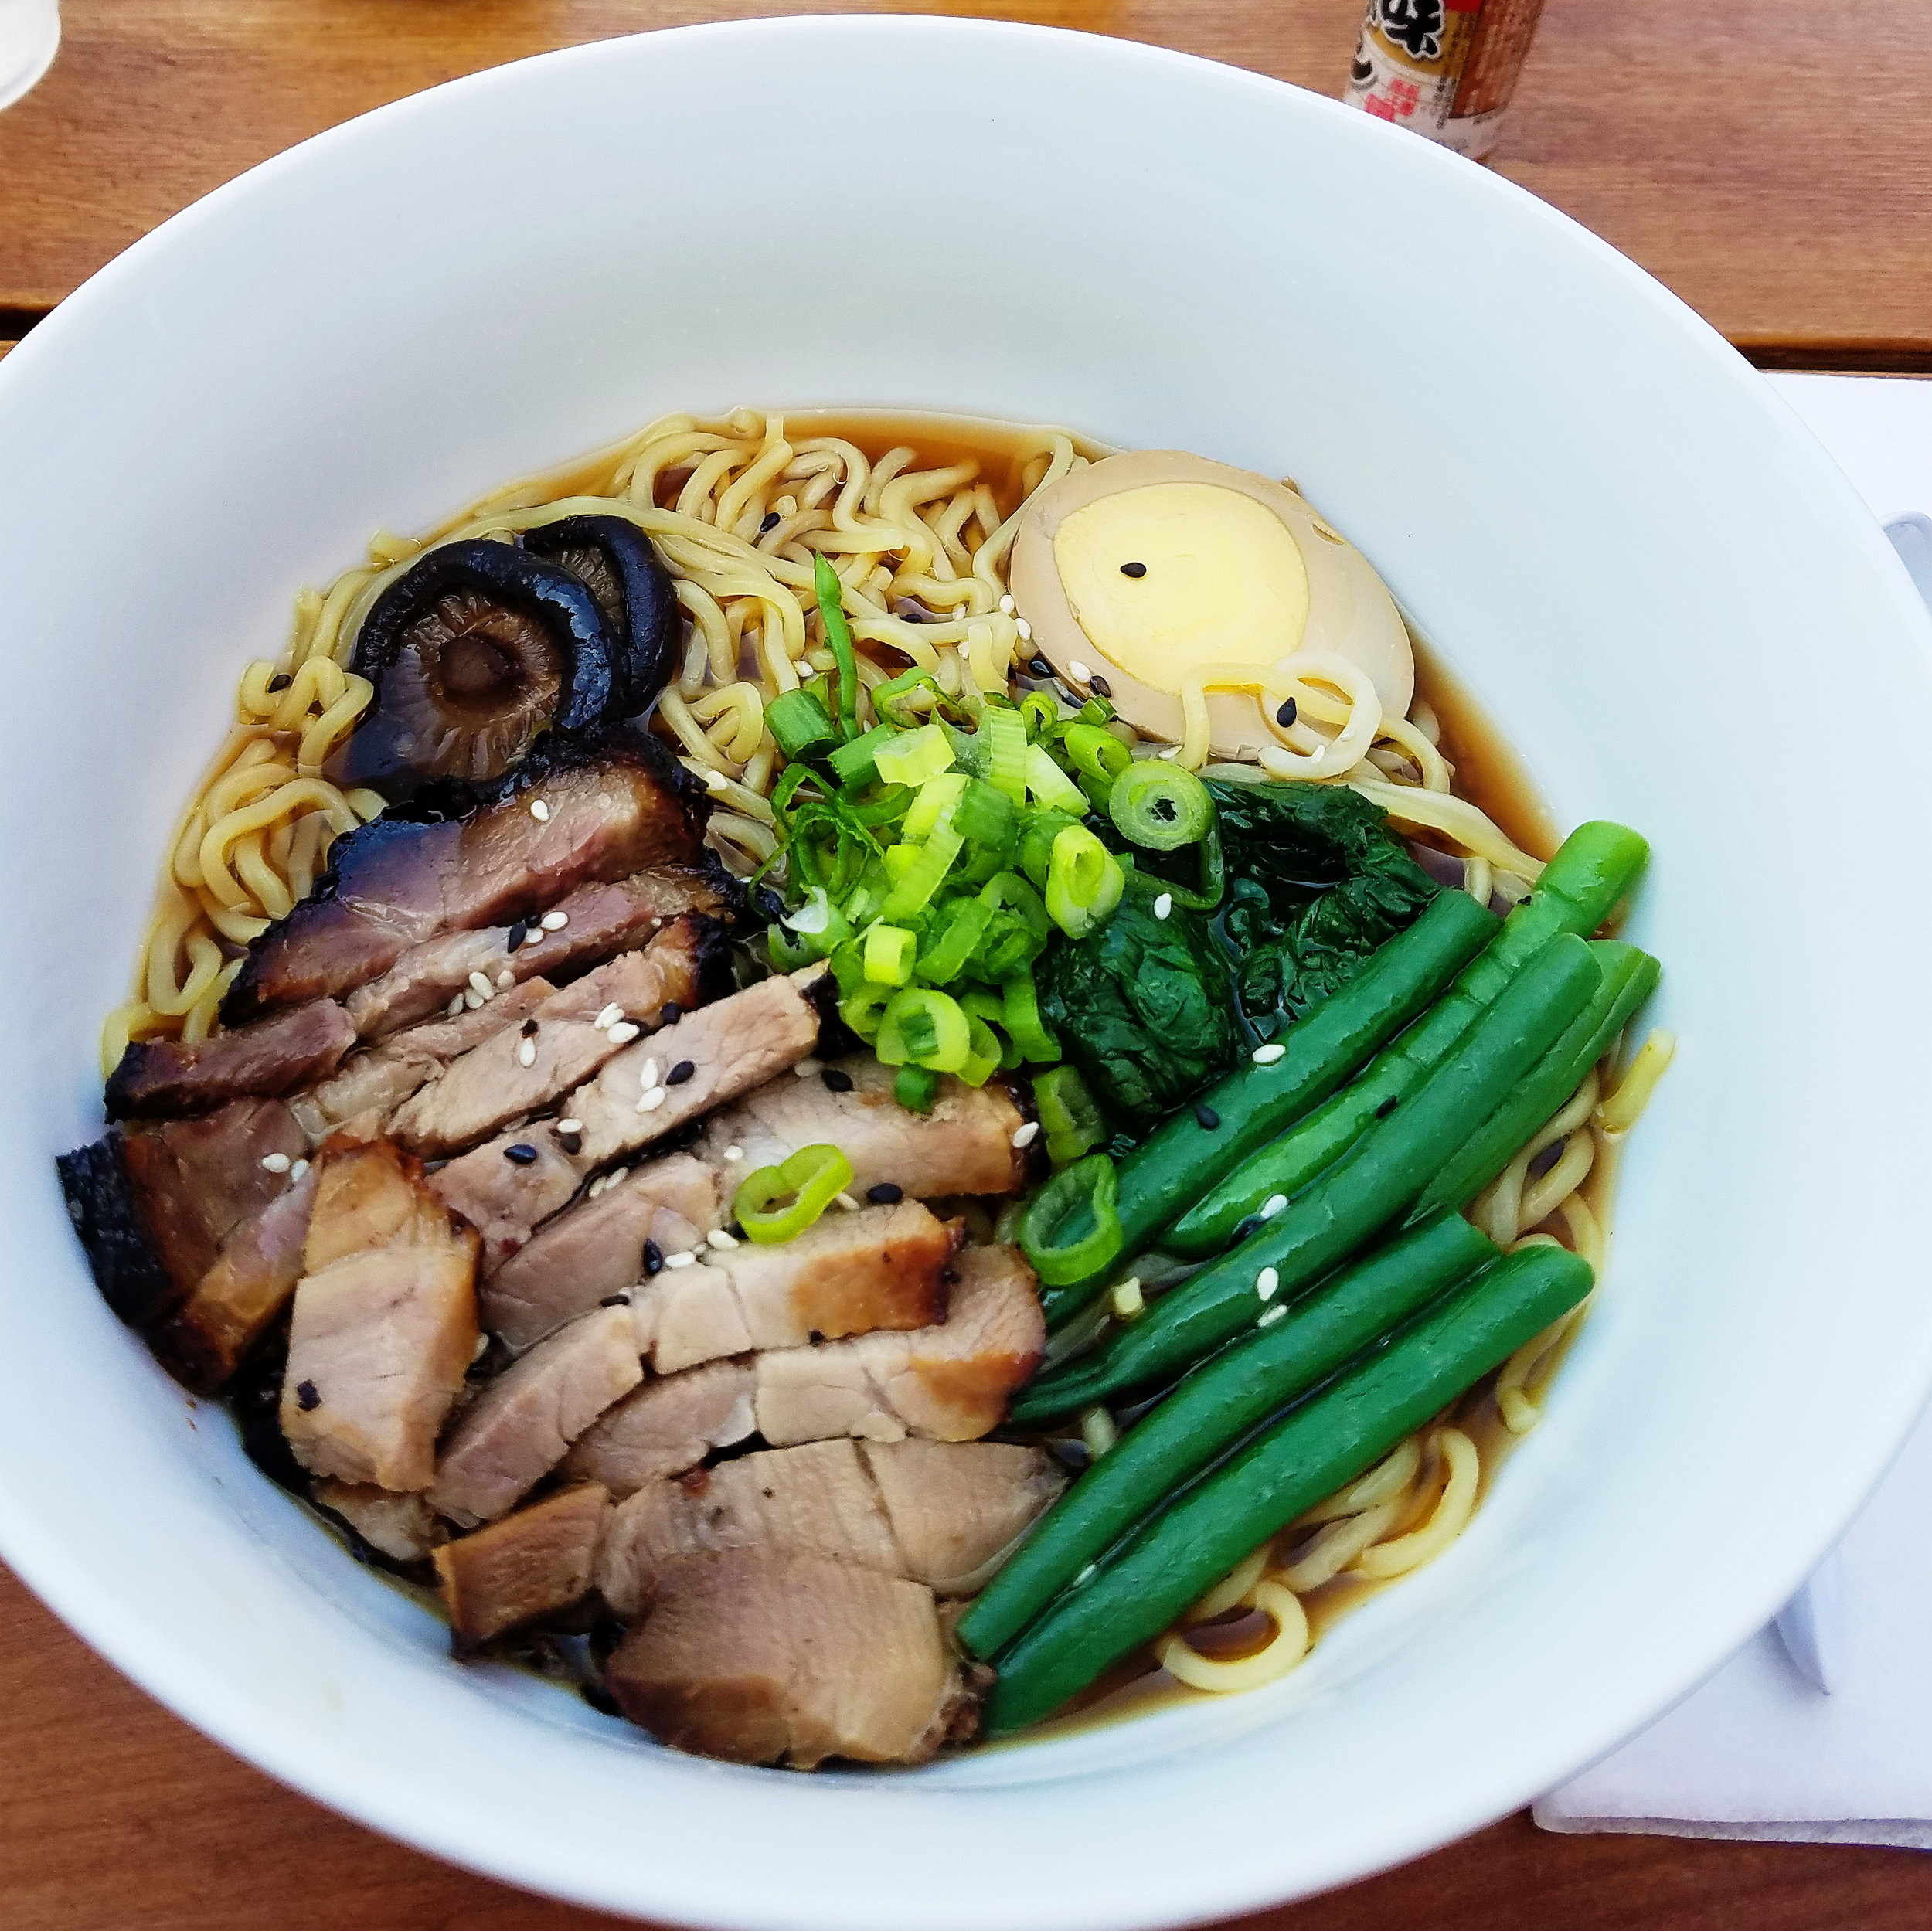 It's never too hot for ramen, especially when it's this delicious